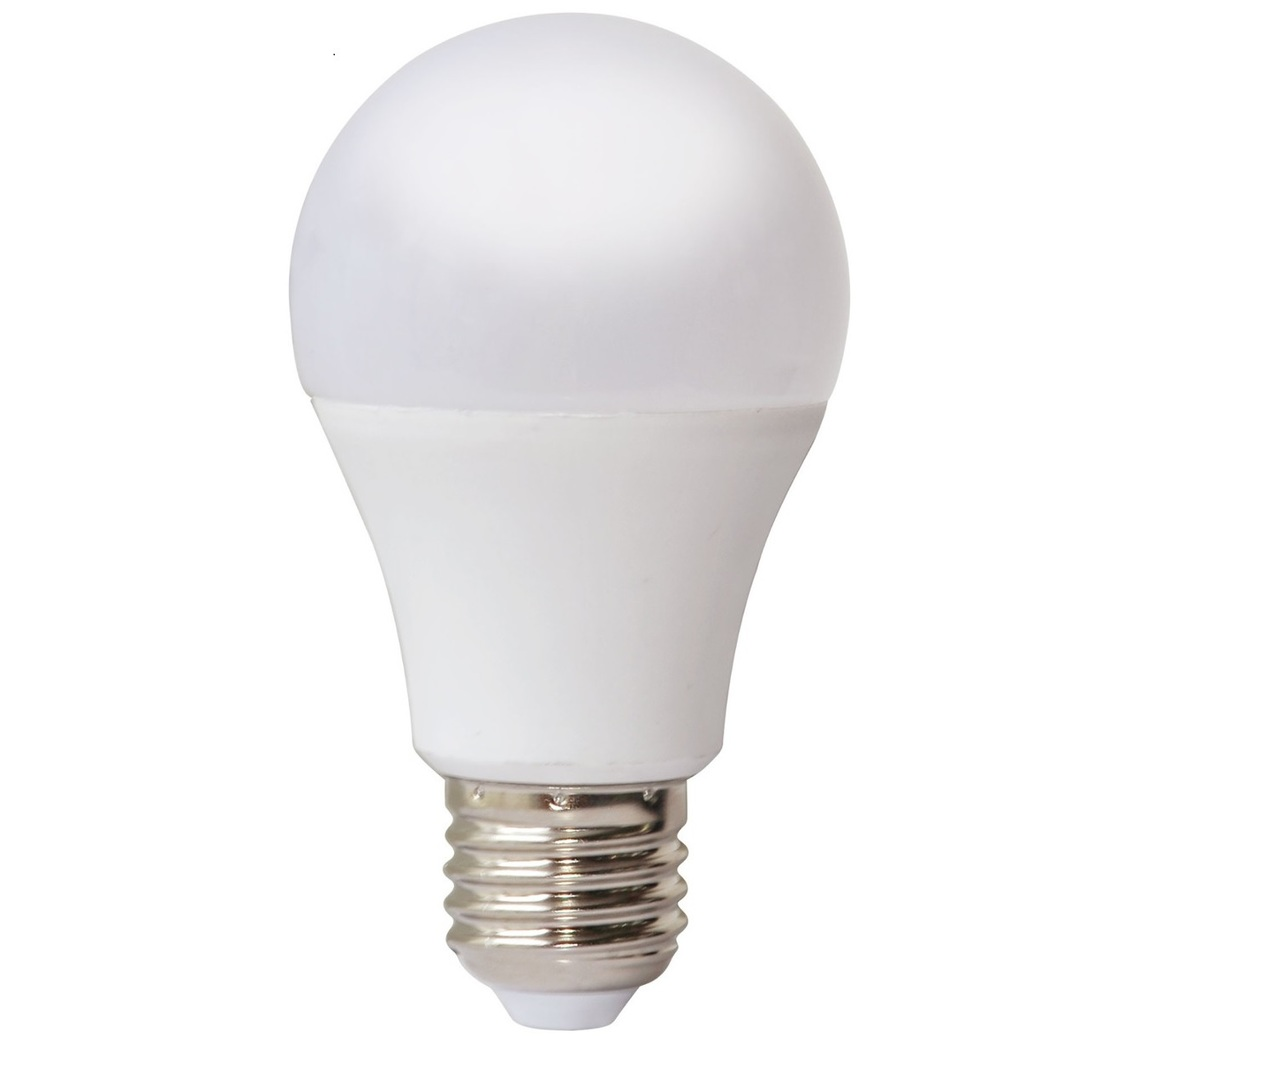 10 W E27 A60 Led Bulb Dimmable 100% / 50% / 25%. Color: Warm